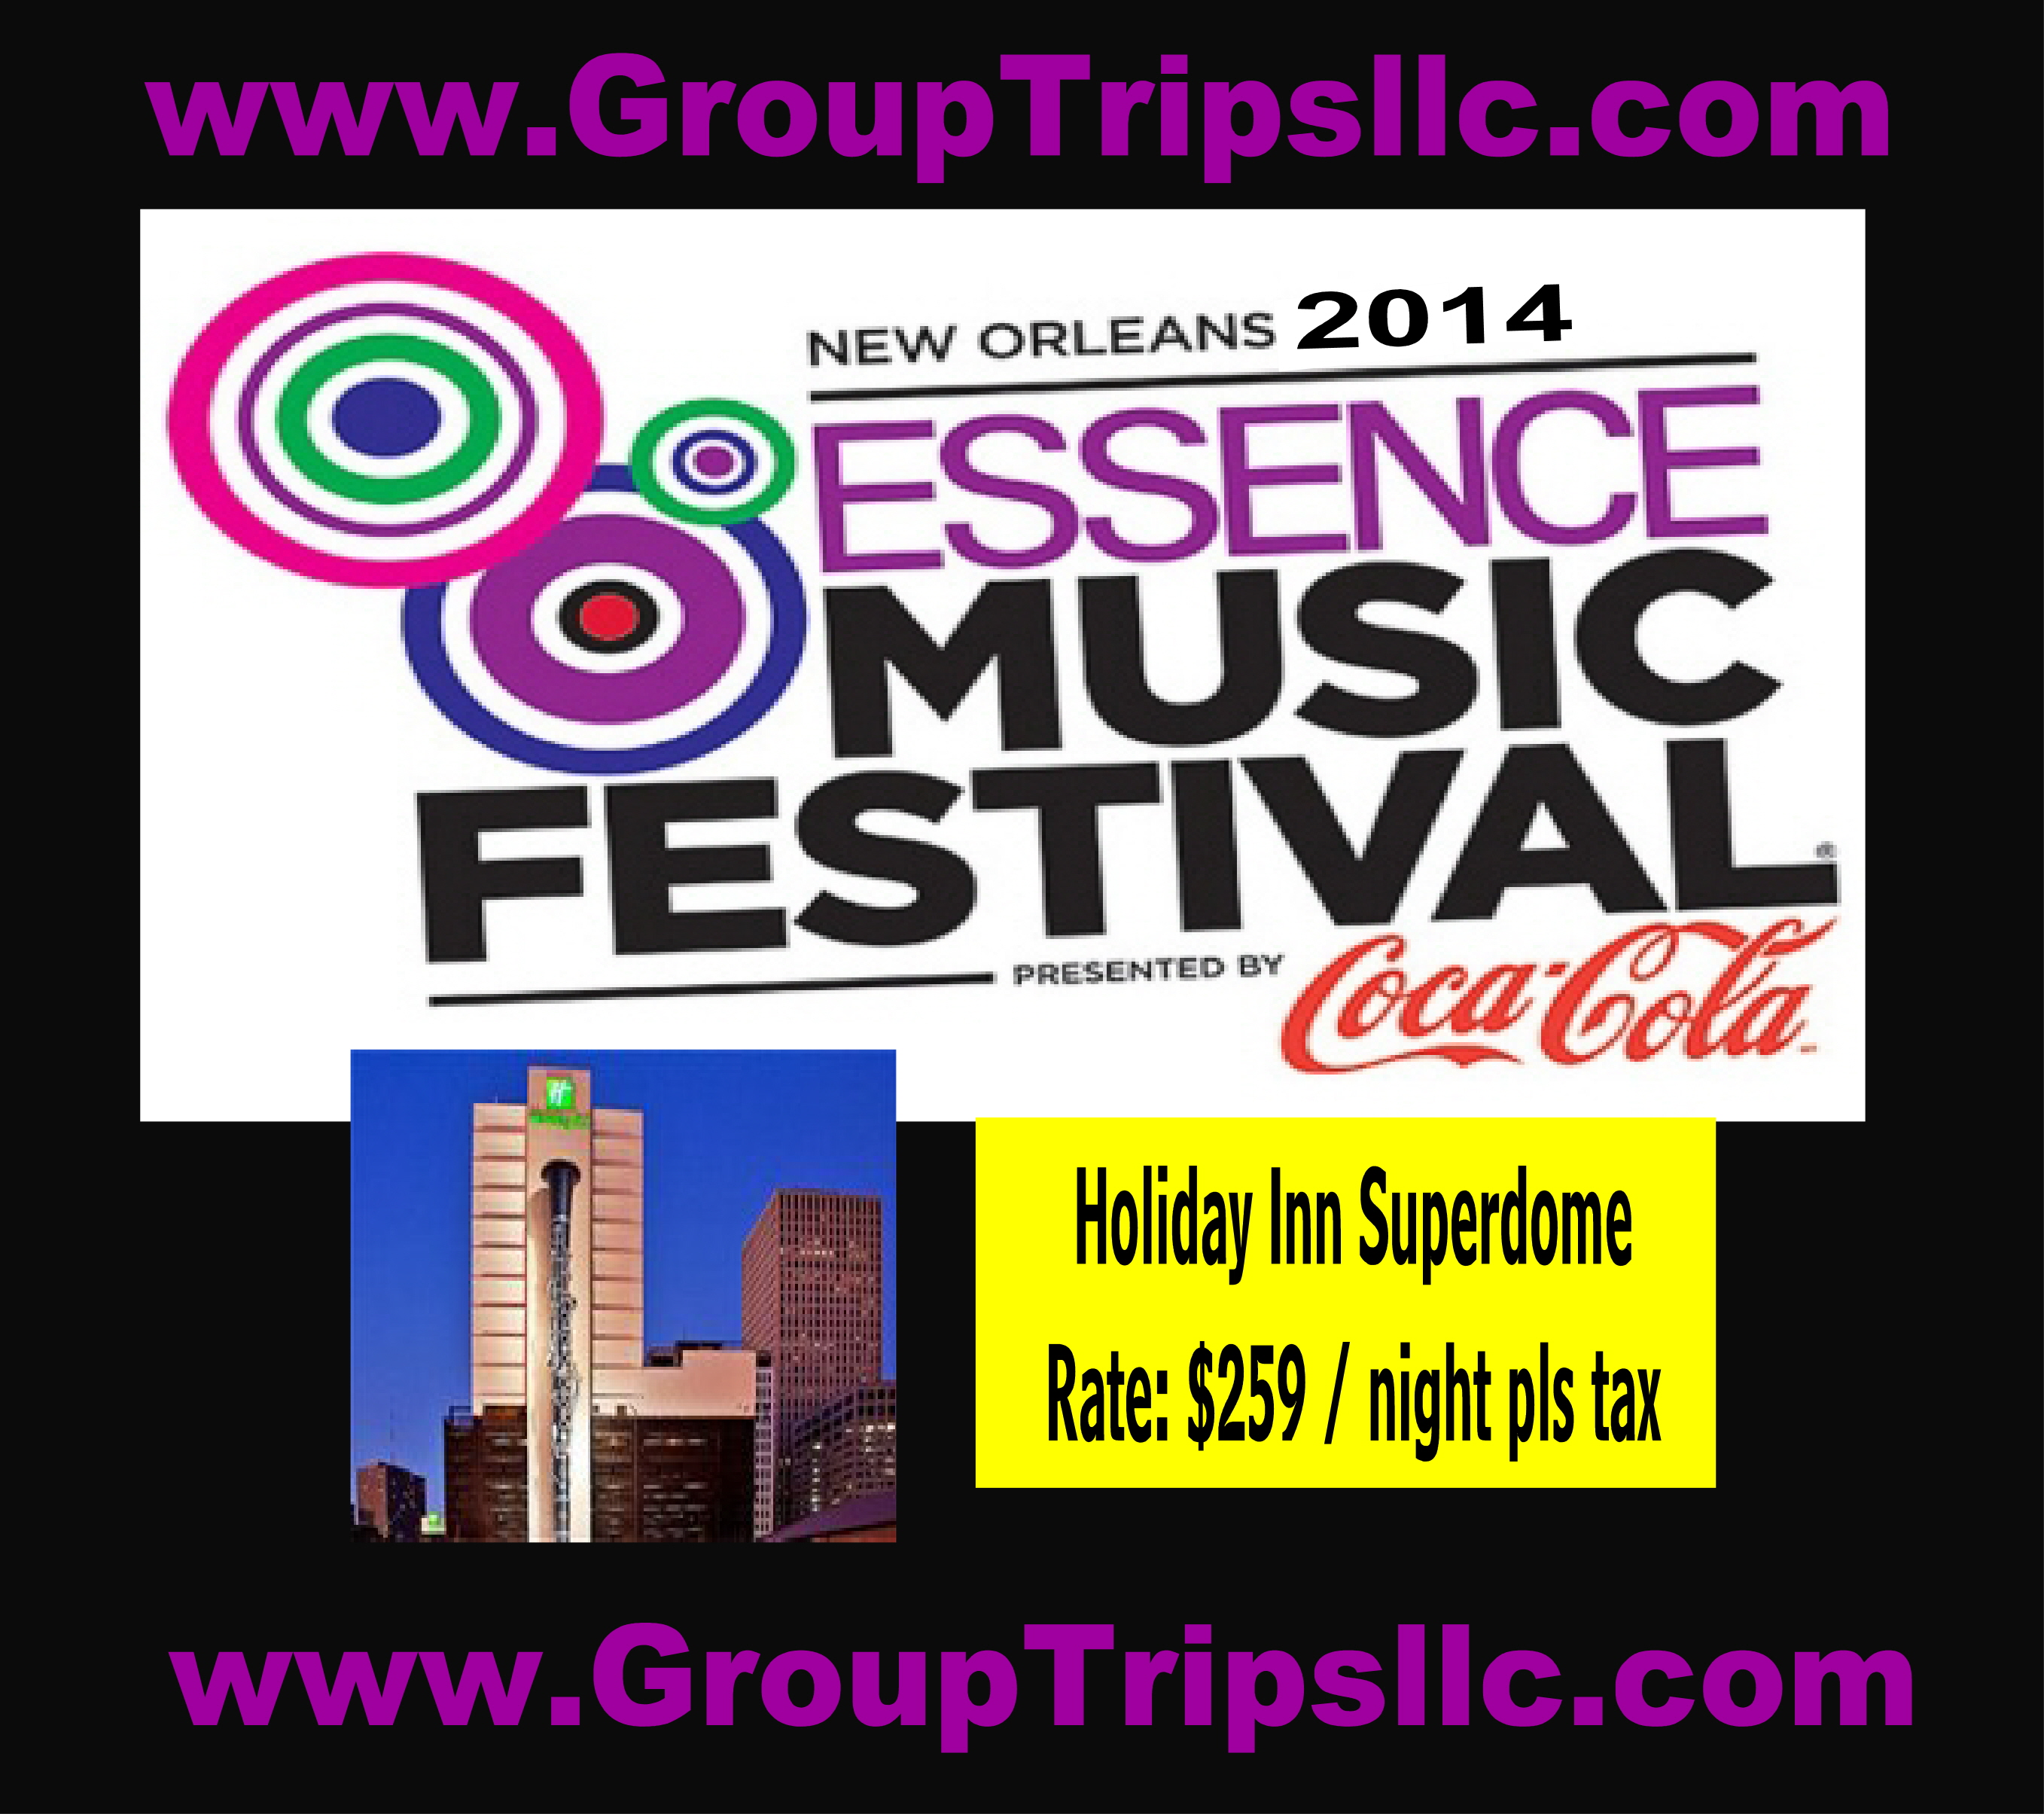 Essence Music Festival 2014 Packages Holiday Inn Superdome